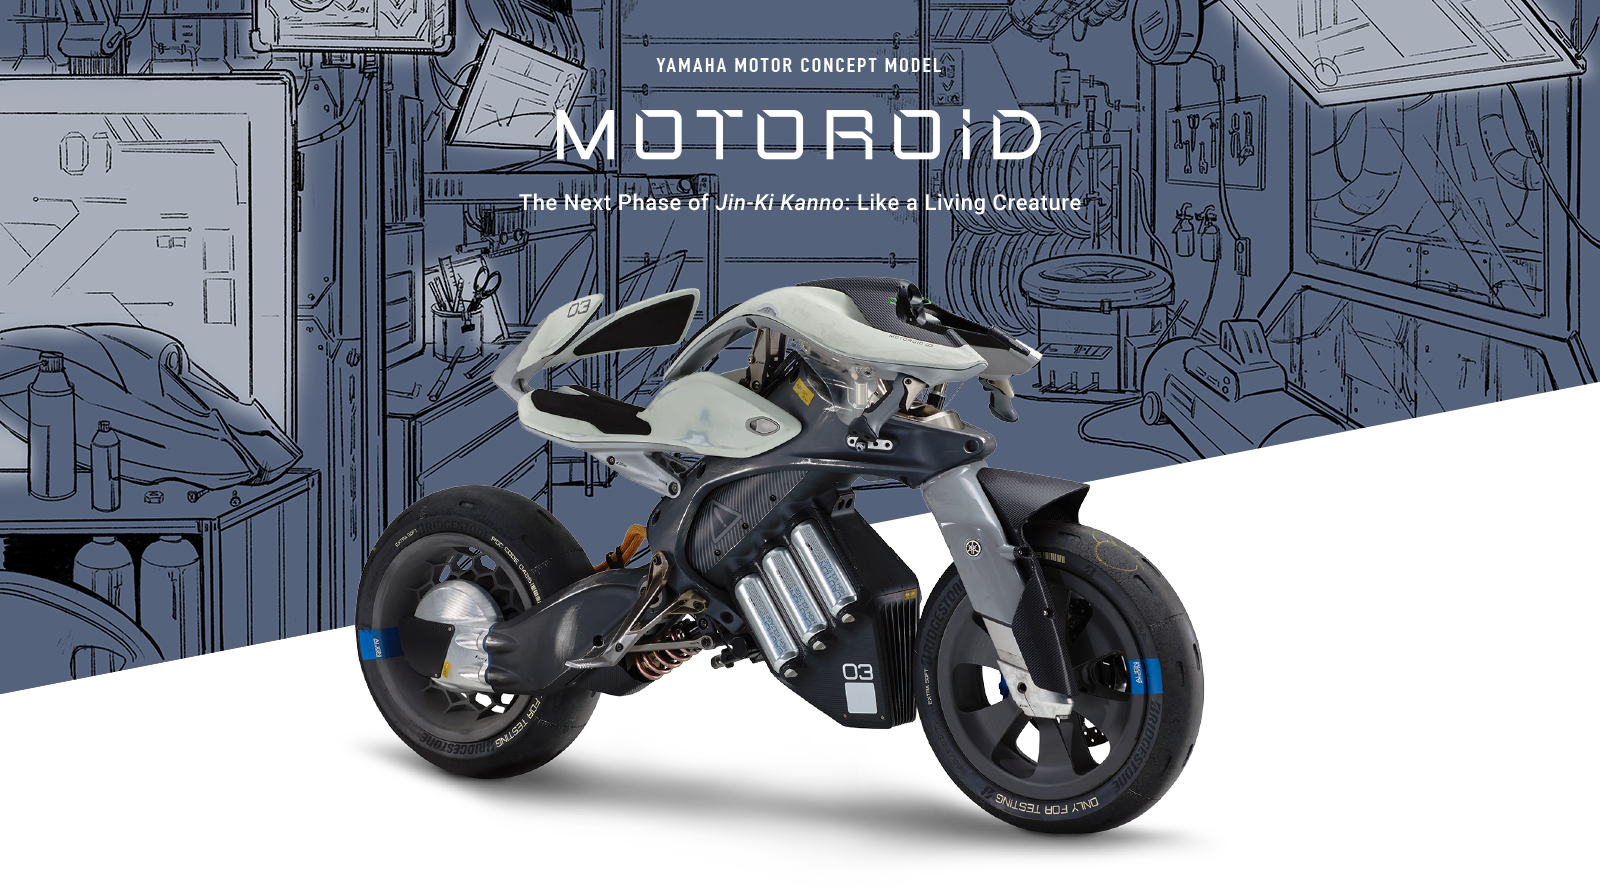 Yamaha MOTOROiD wins Global IF Design Award